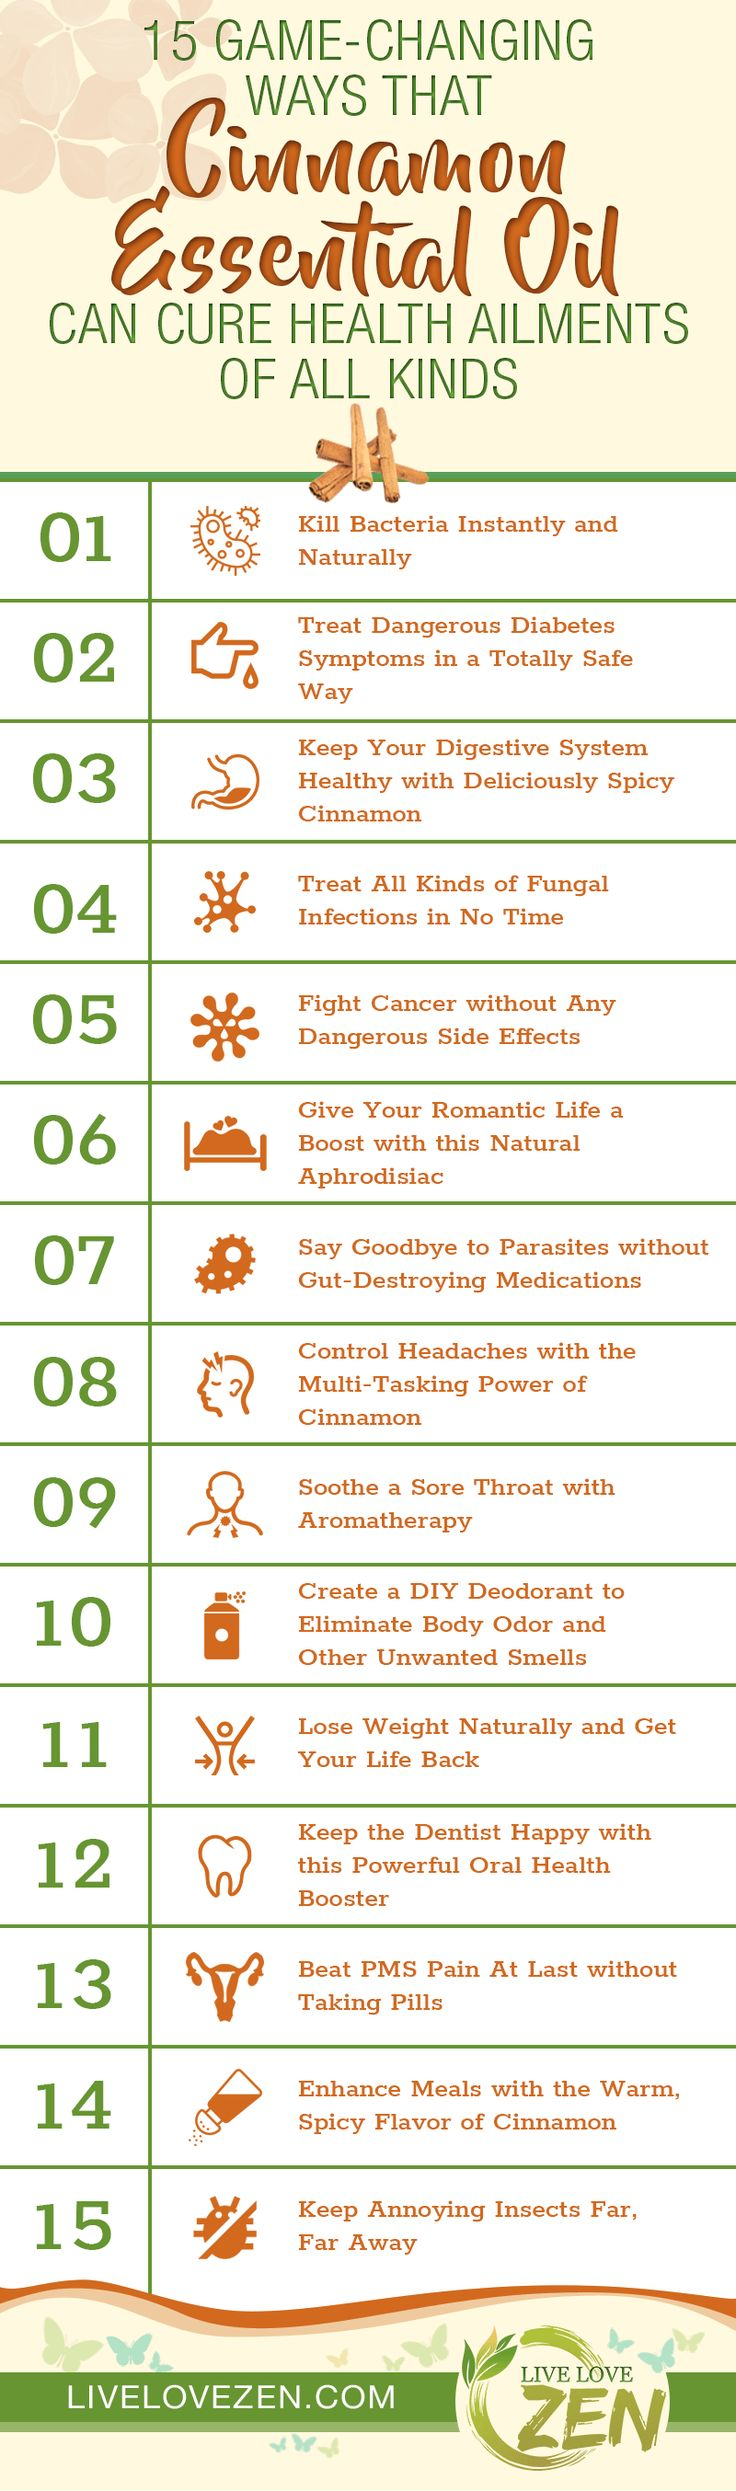 Cinnamon Essential Oil Benefits Infographic